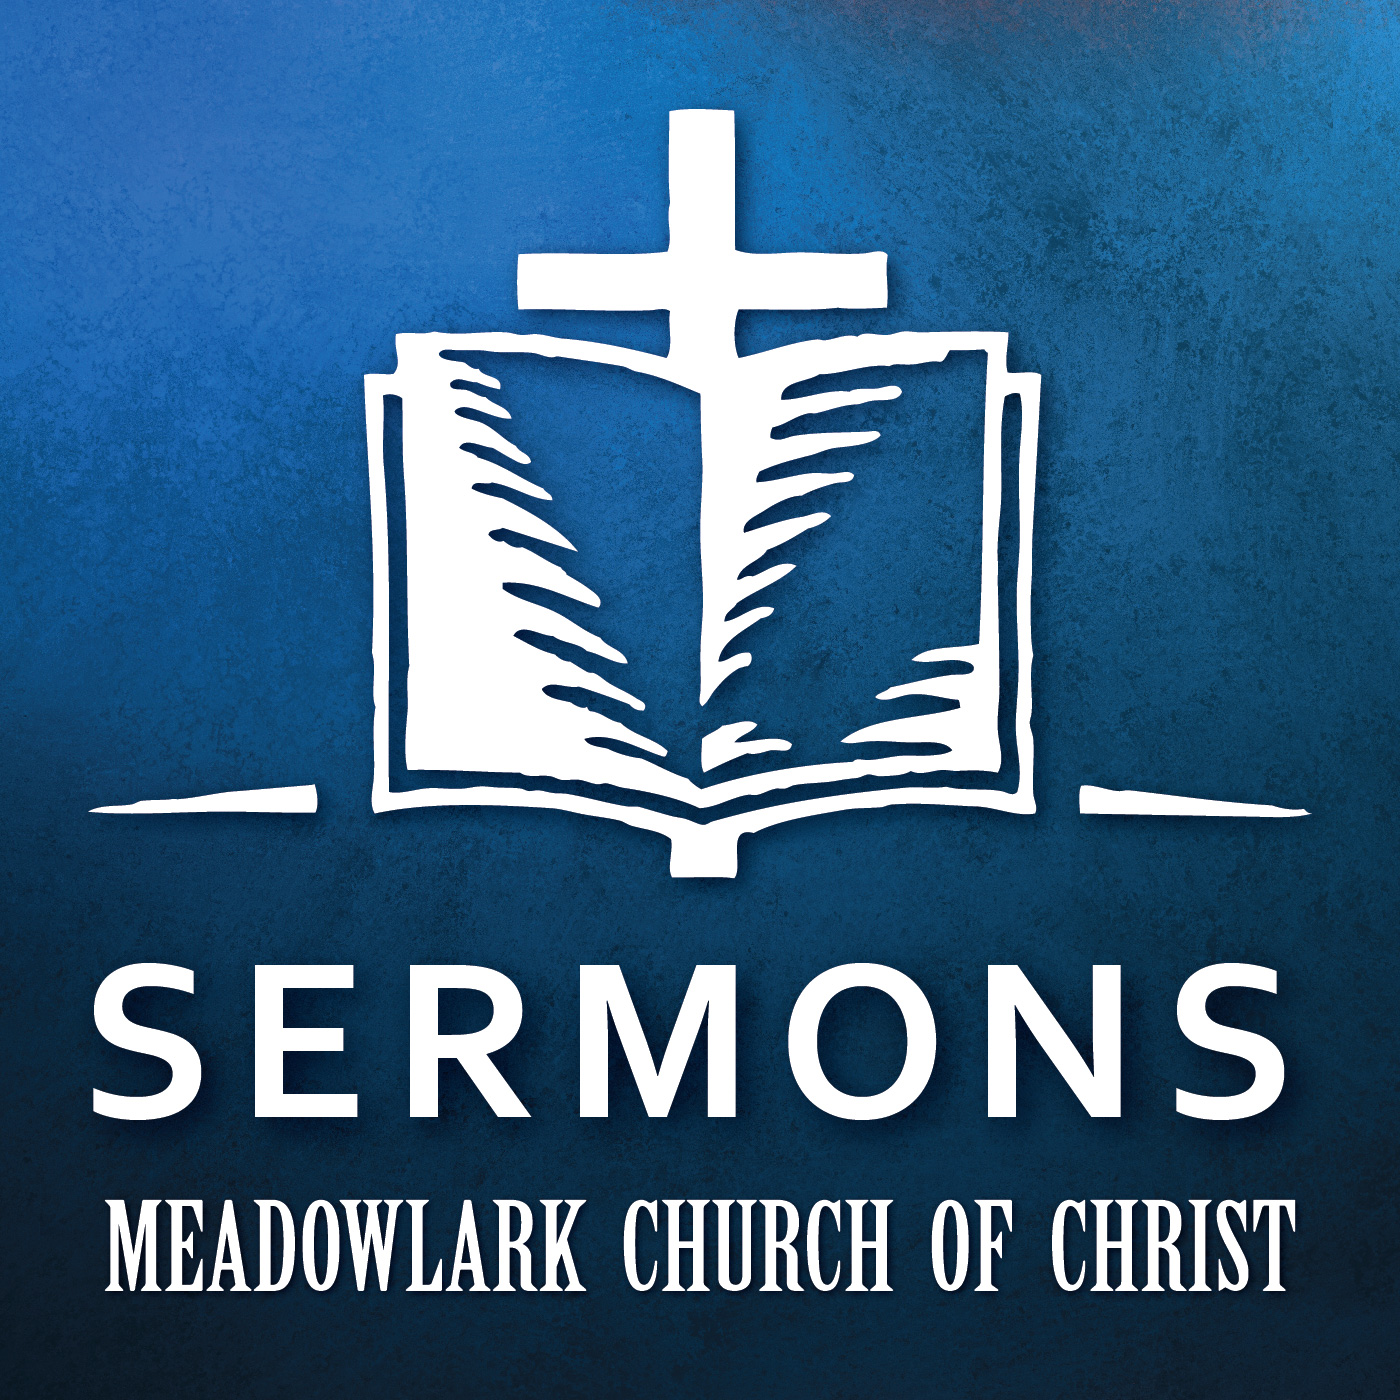 Meadowlark Church of Christ - Sermons